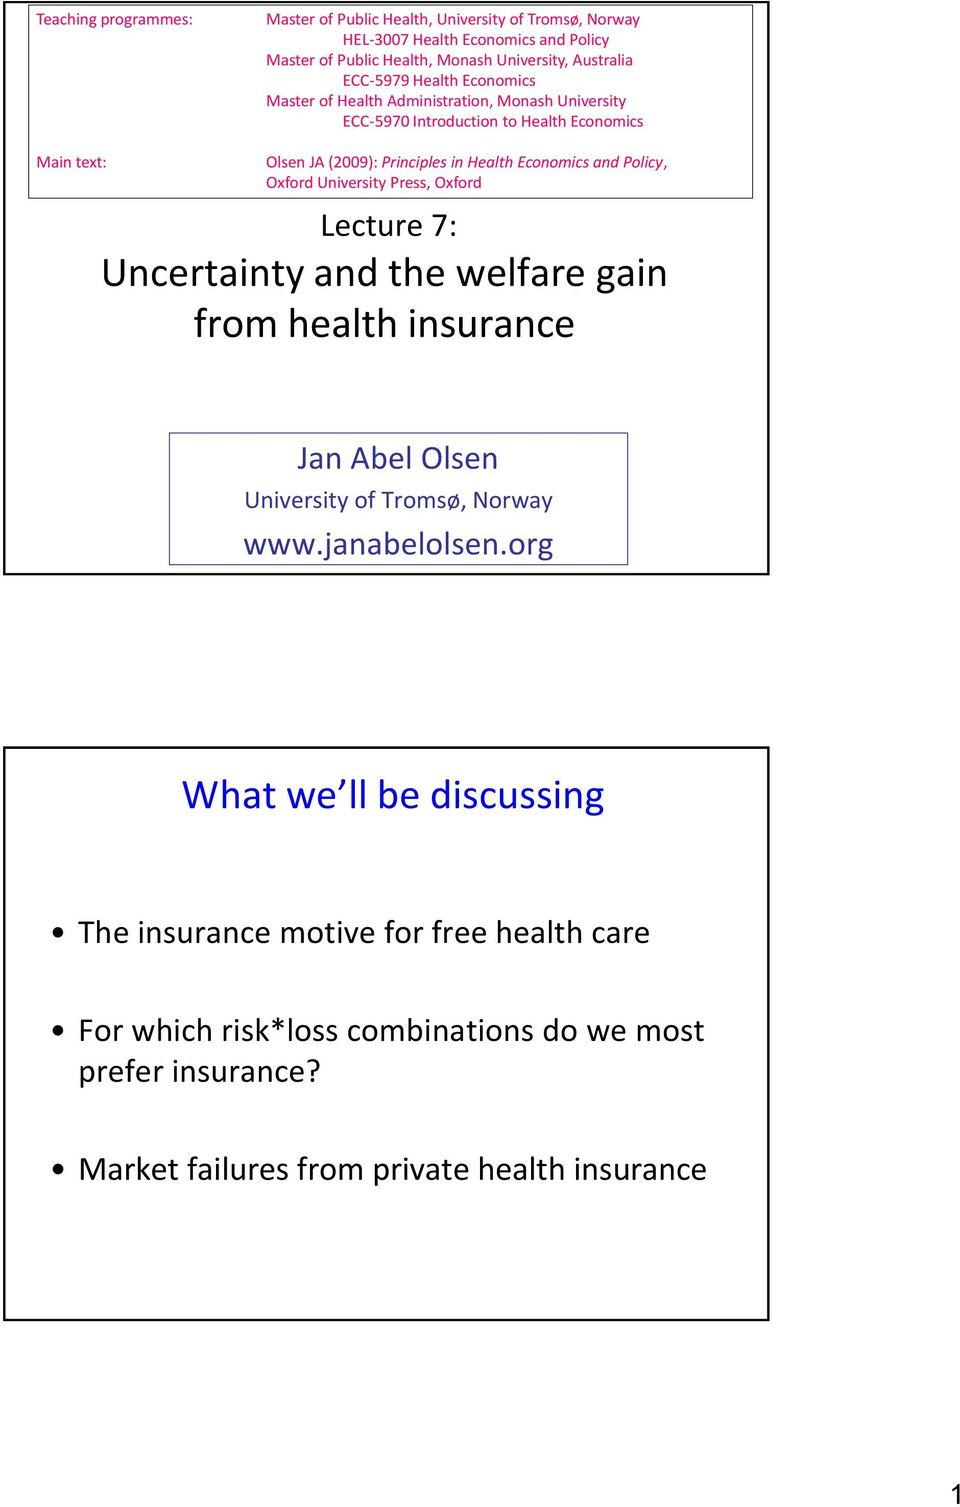 Economics and Policy, Oxford University Press, Oxford Lecture 7: Uncertainty and the welfare gain from health insurance Jan Abel Olsen University of Tromsø, Norway www.